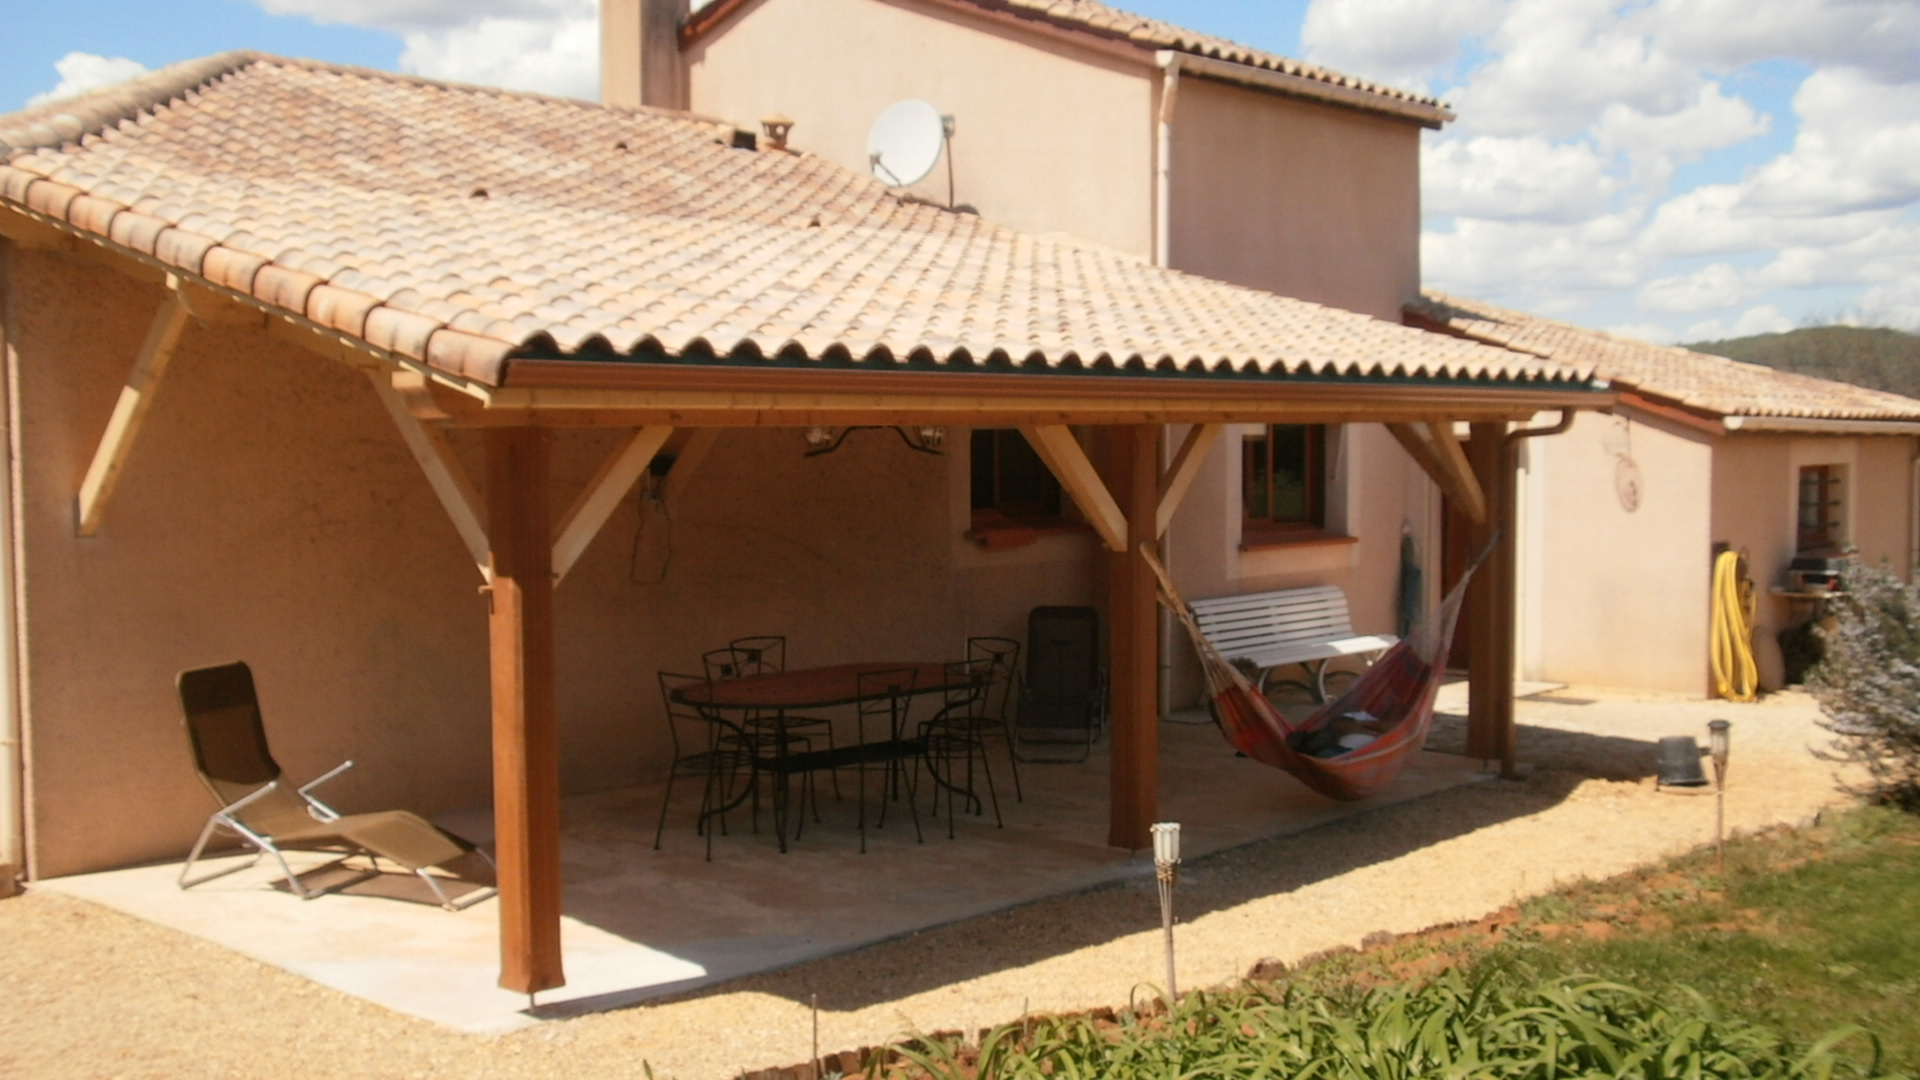 Terrasse charpente traditionnelle fargal for Terrasse couverte toit plat